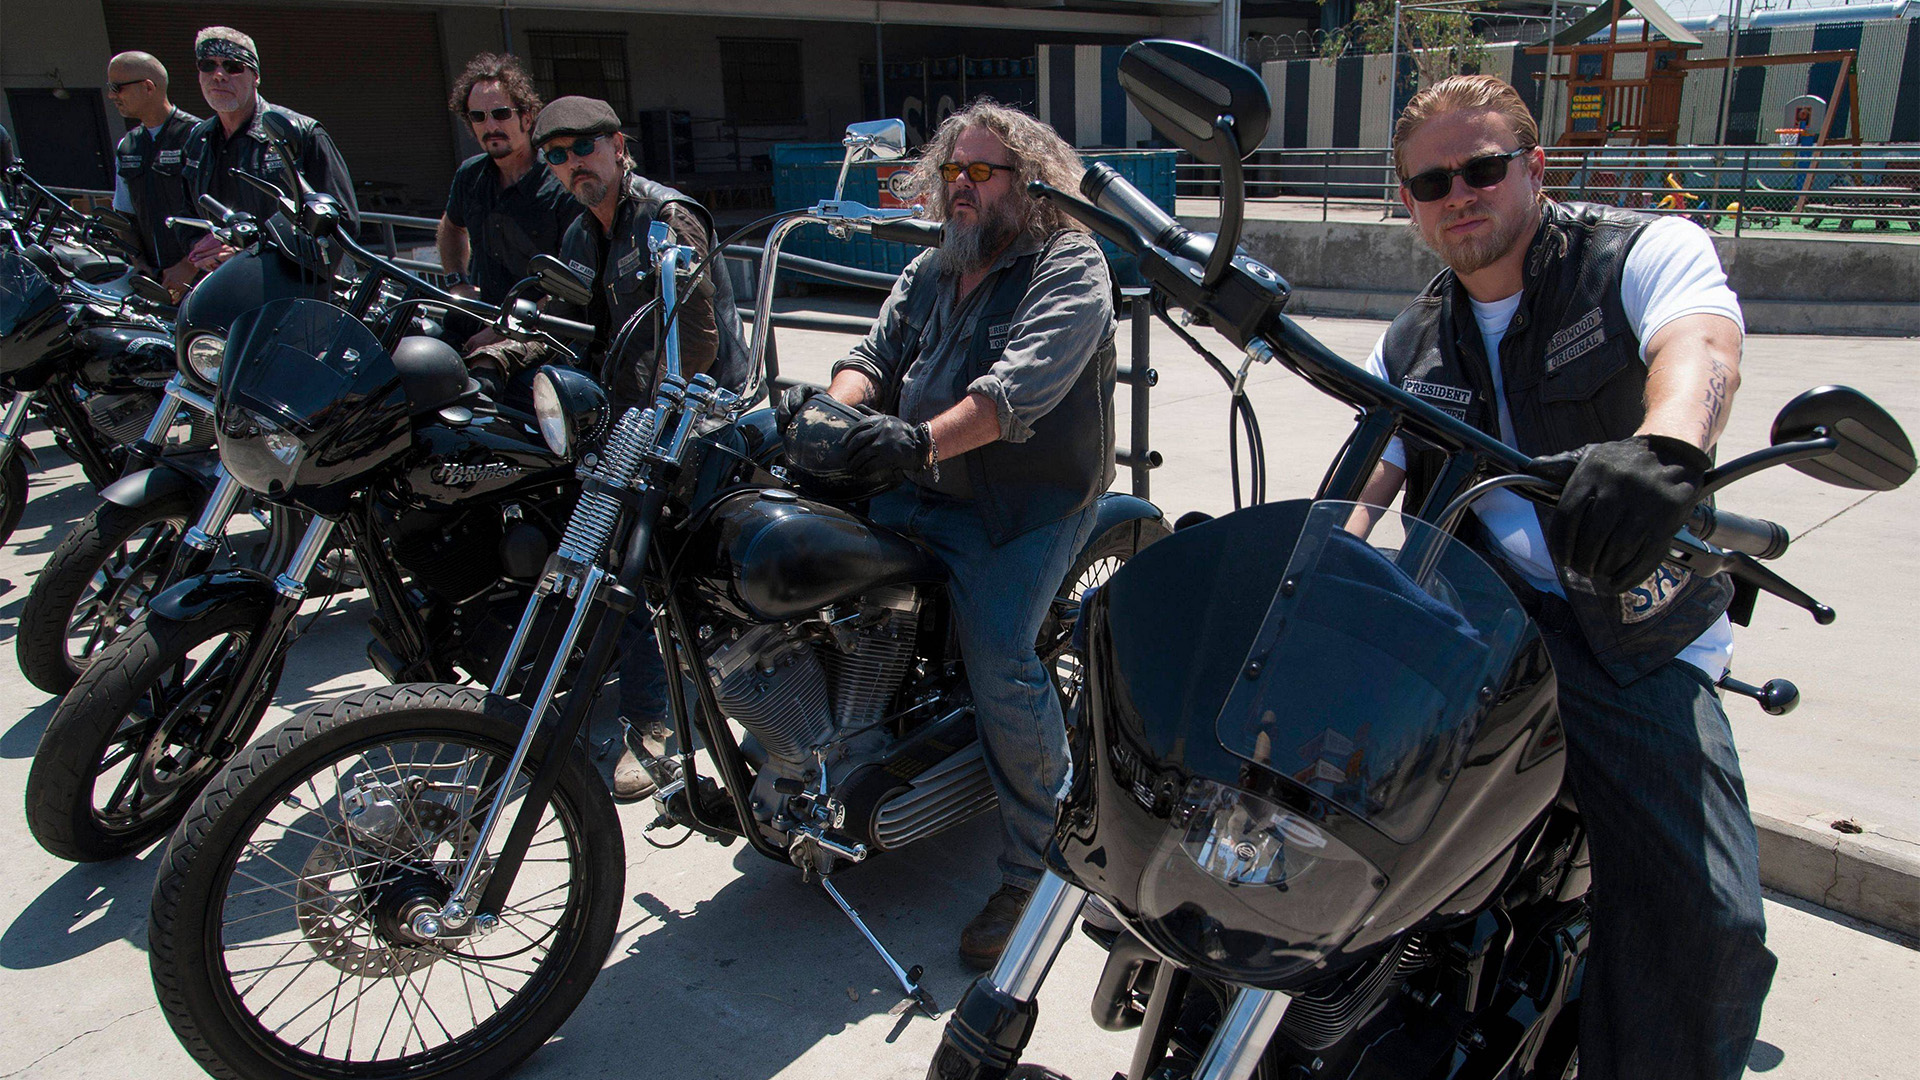 Sons Of Anarchy Wallpapers Pictures Images